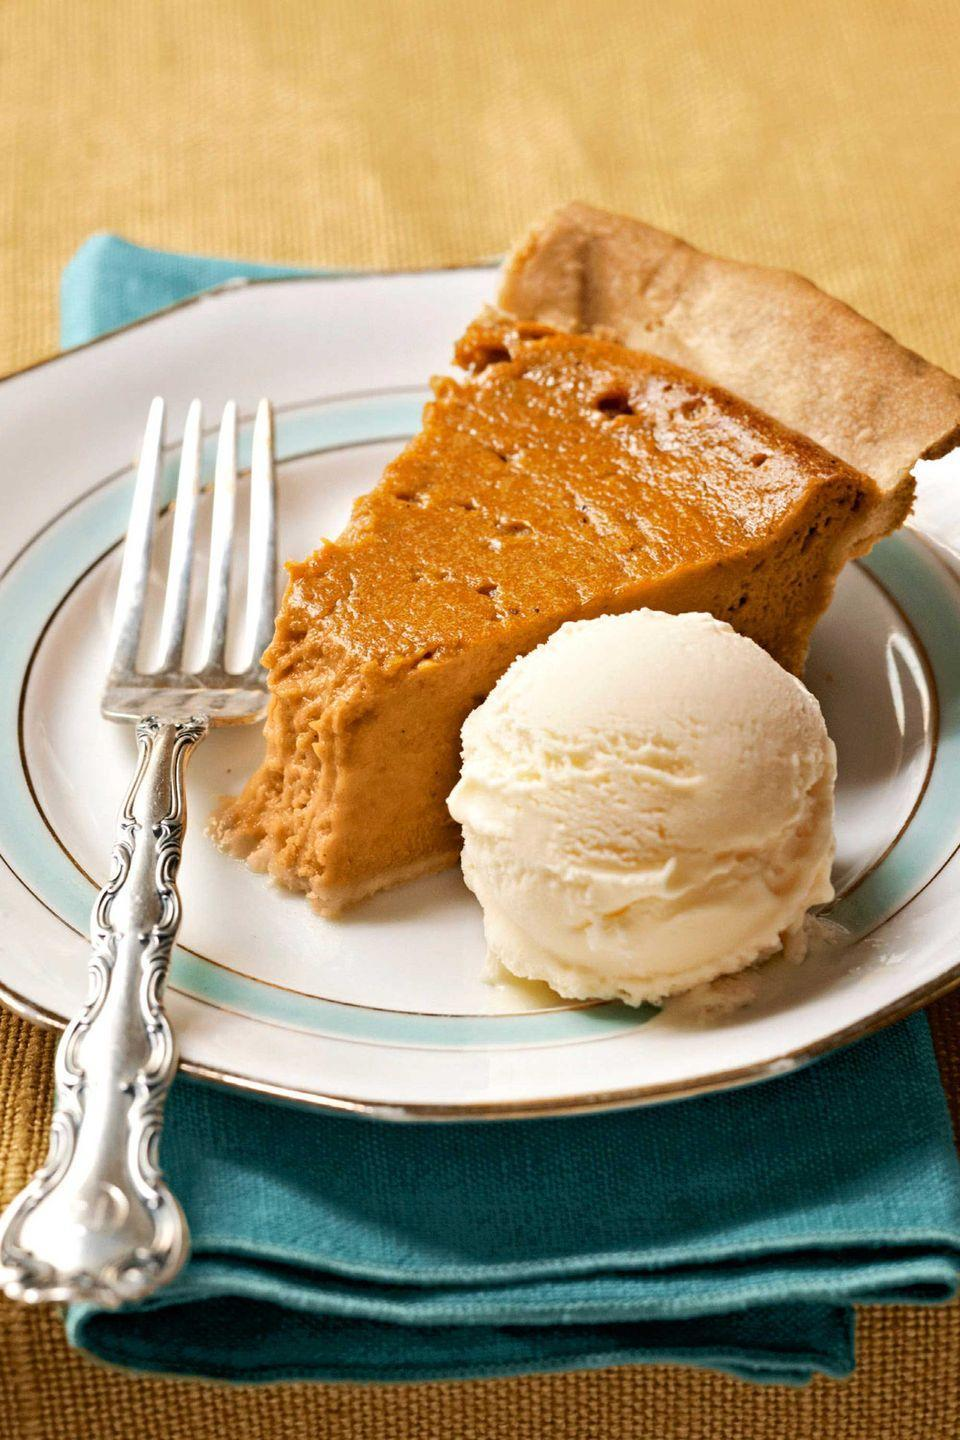 """<p>A regular at the holiday table, this classic pie recipe contains the perfect blend of cinnamon and nutmeg spices.</p><p><strong><a href=""""https://www.countryliving.com/food-drinks/recipes/a19126/sweet-potato-pie-recipe/"""" rel=""""nofollow noopener"""" target=""""_blank"""" data-ylk=""""slk:Get the recipe"""" class=""""link rapid-noclick-resp"""">Get the recipe</a>.</strong></p>"""